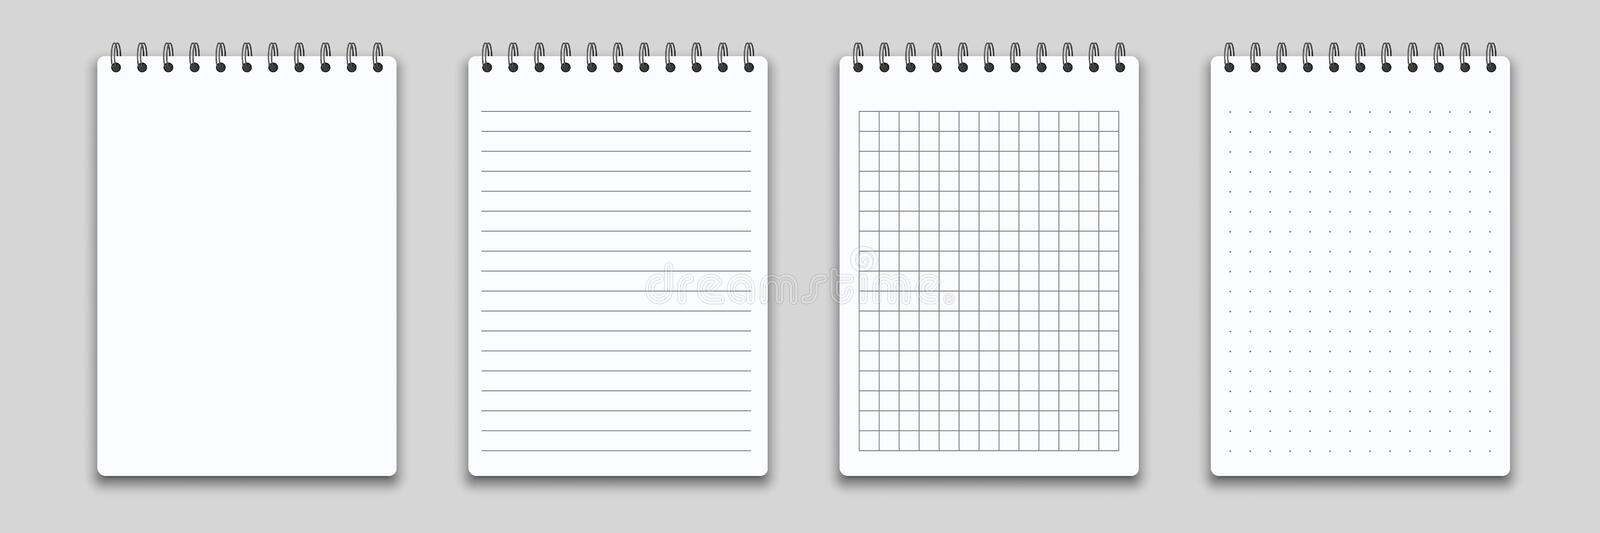 Notebook memo notepad binder. Vector note pad or diary with lined and squared paper page template stock illustration